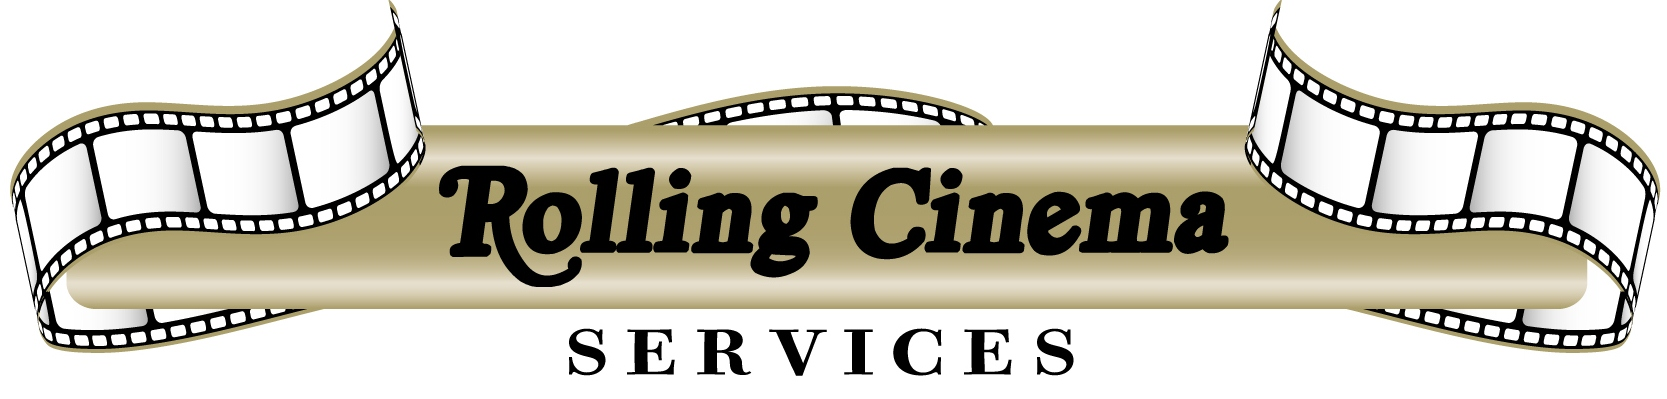 Rolling Cinema Services